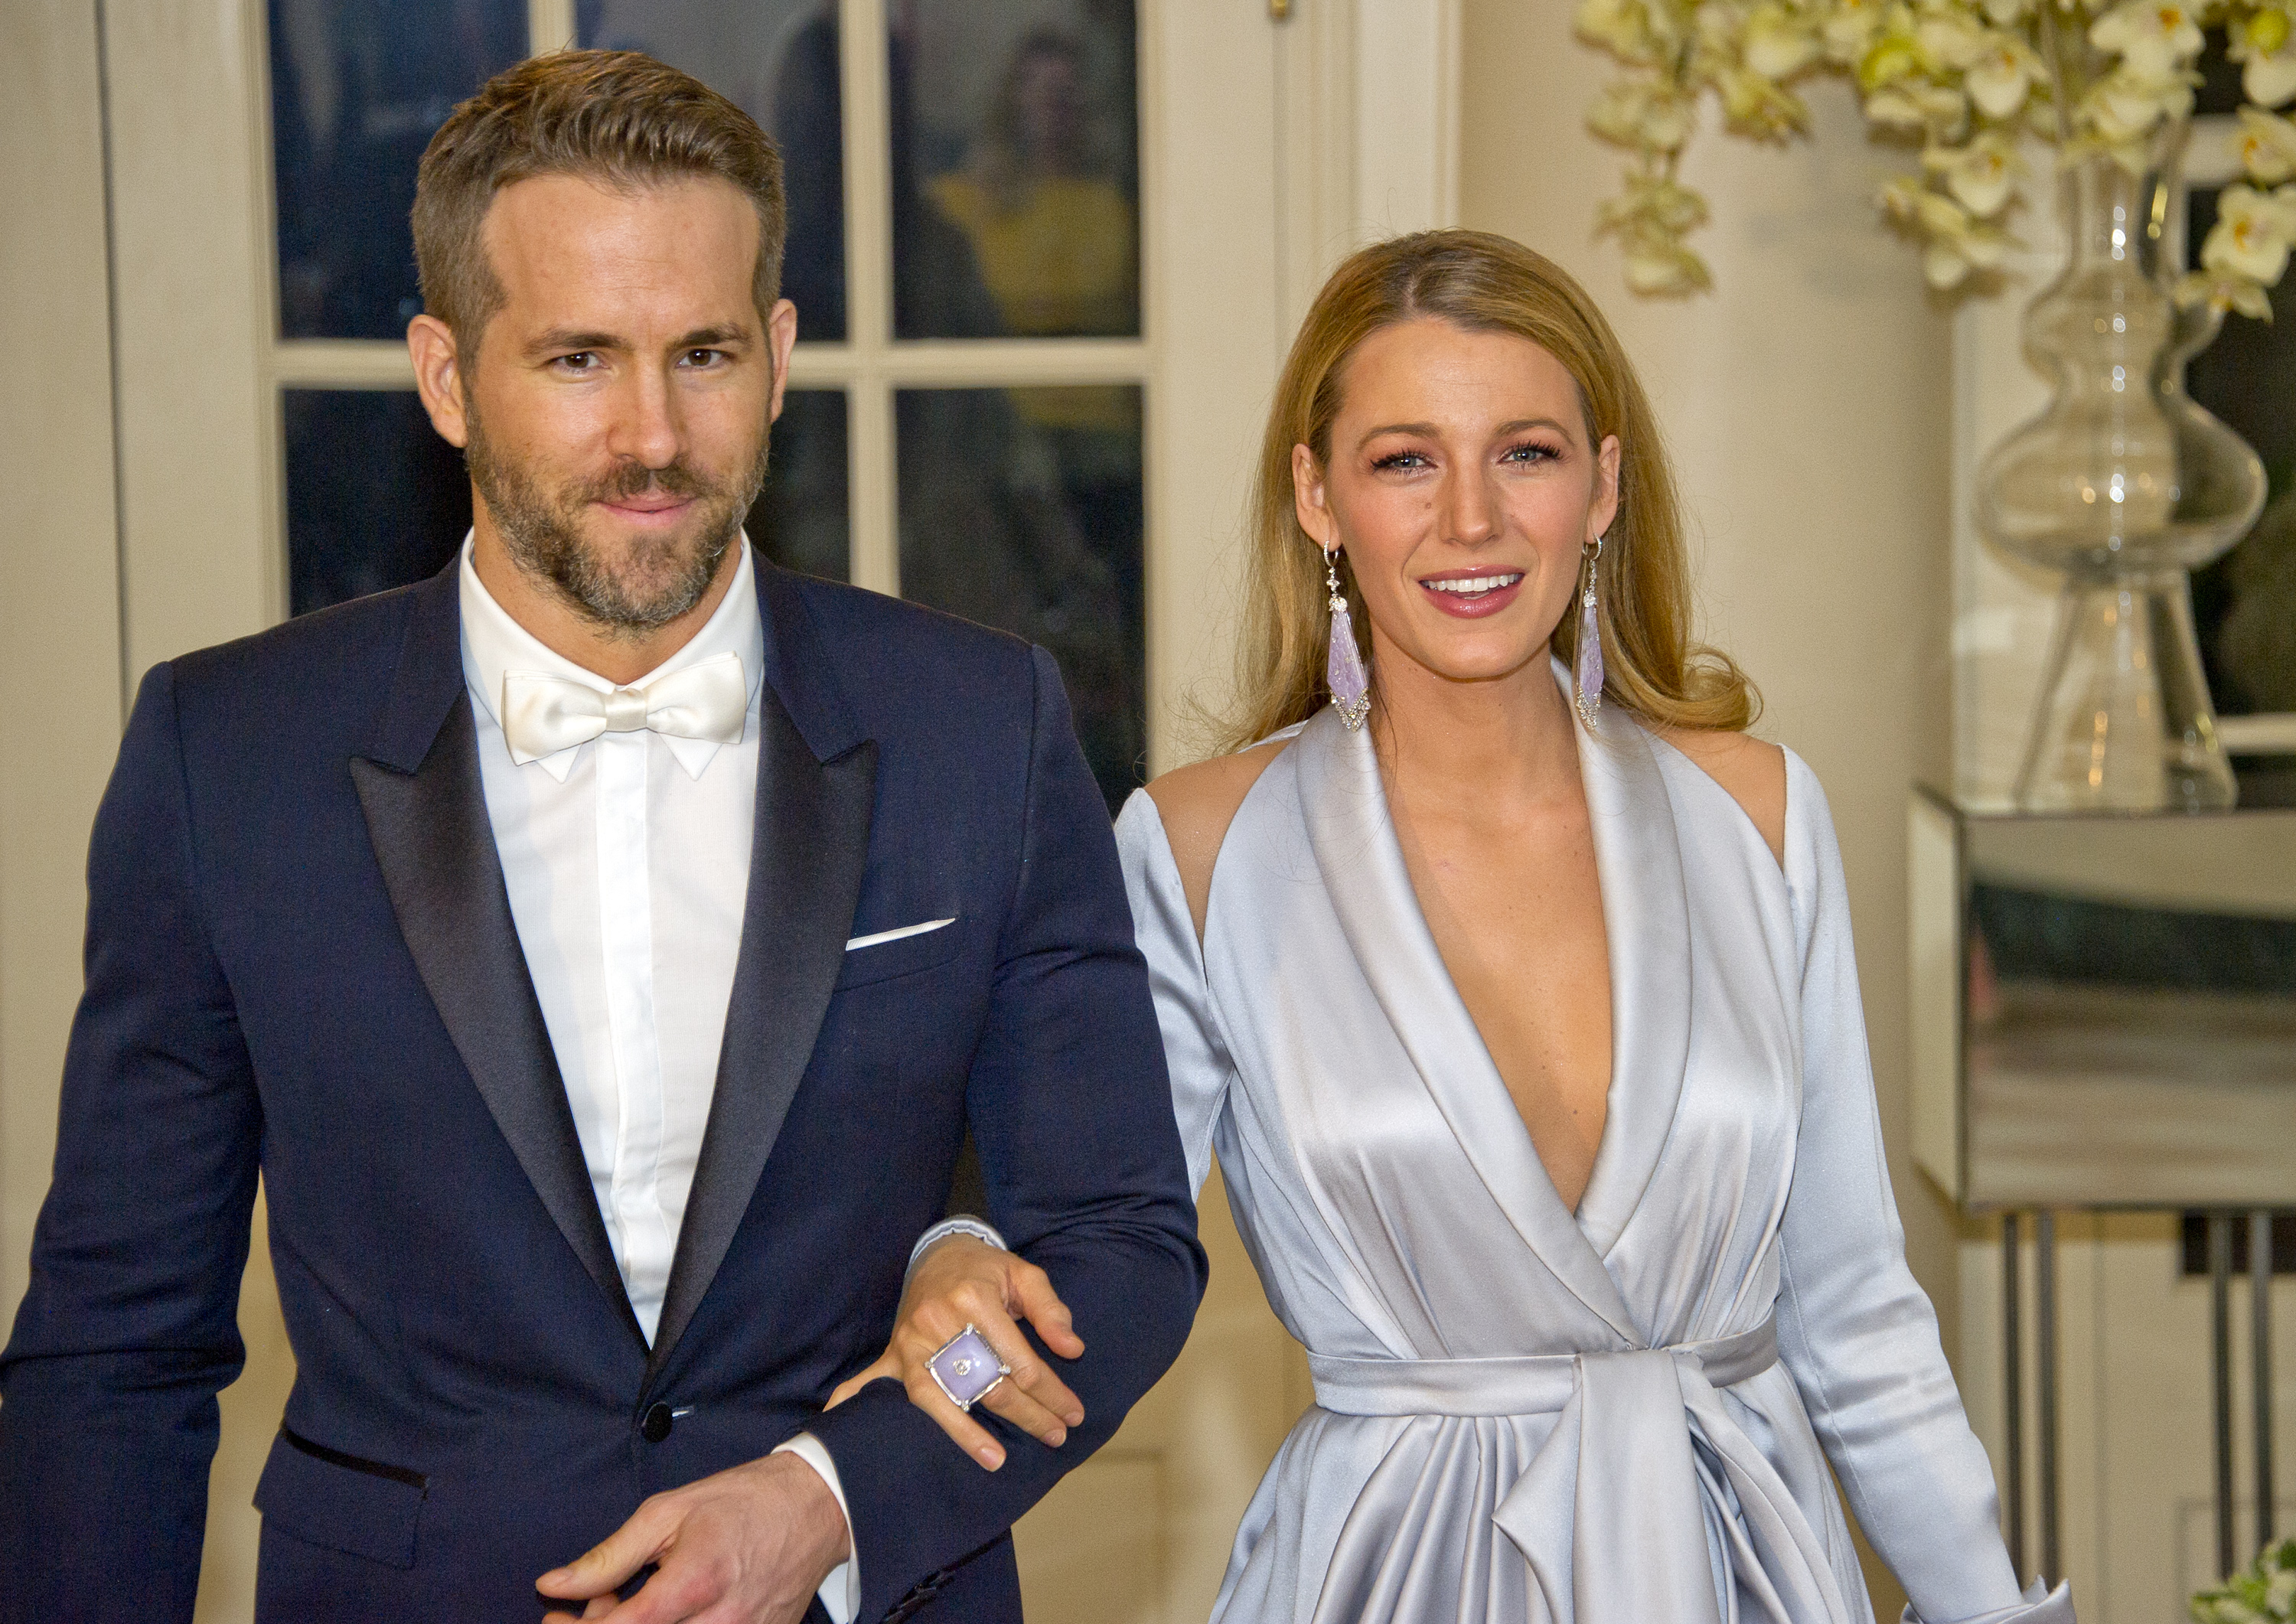 Actors Ryan Reynolds and Blake Lively arrive for the State Dinner in honor of Prime Minister Trudeau and Mrs. Sophie Trudeau of Canada at the White House March 10, 2016 in Washington, DC.